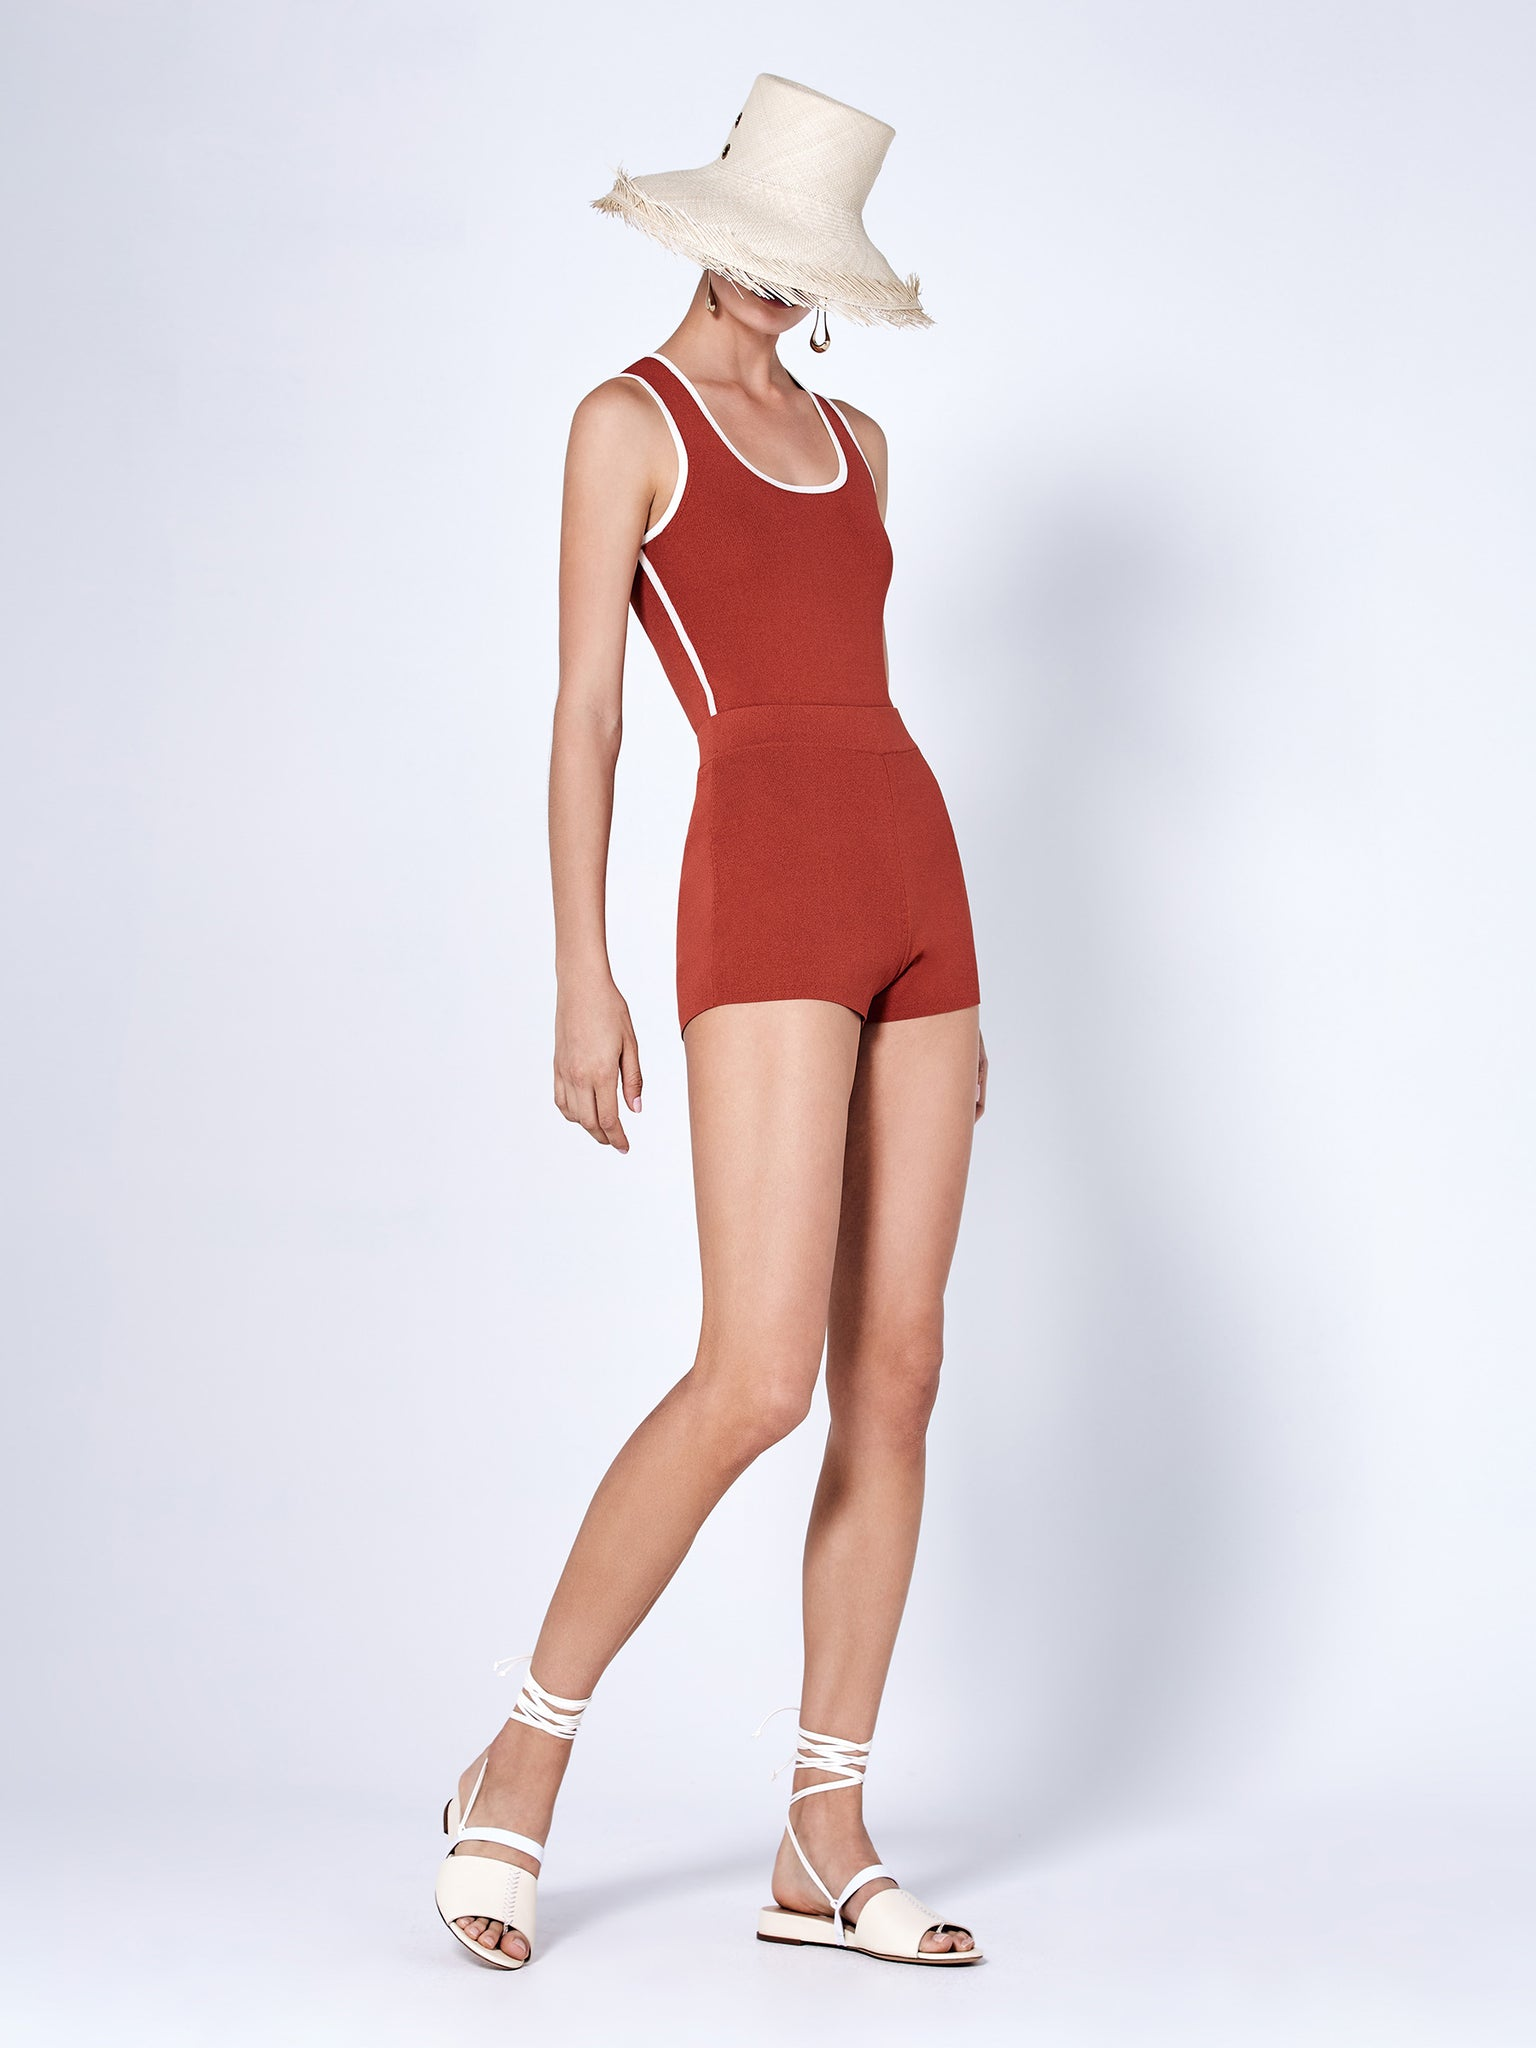 Alexis Panya Bodysuit in red and white piping